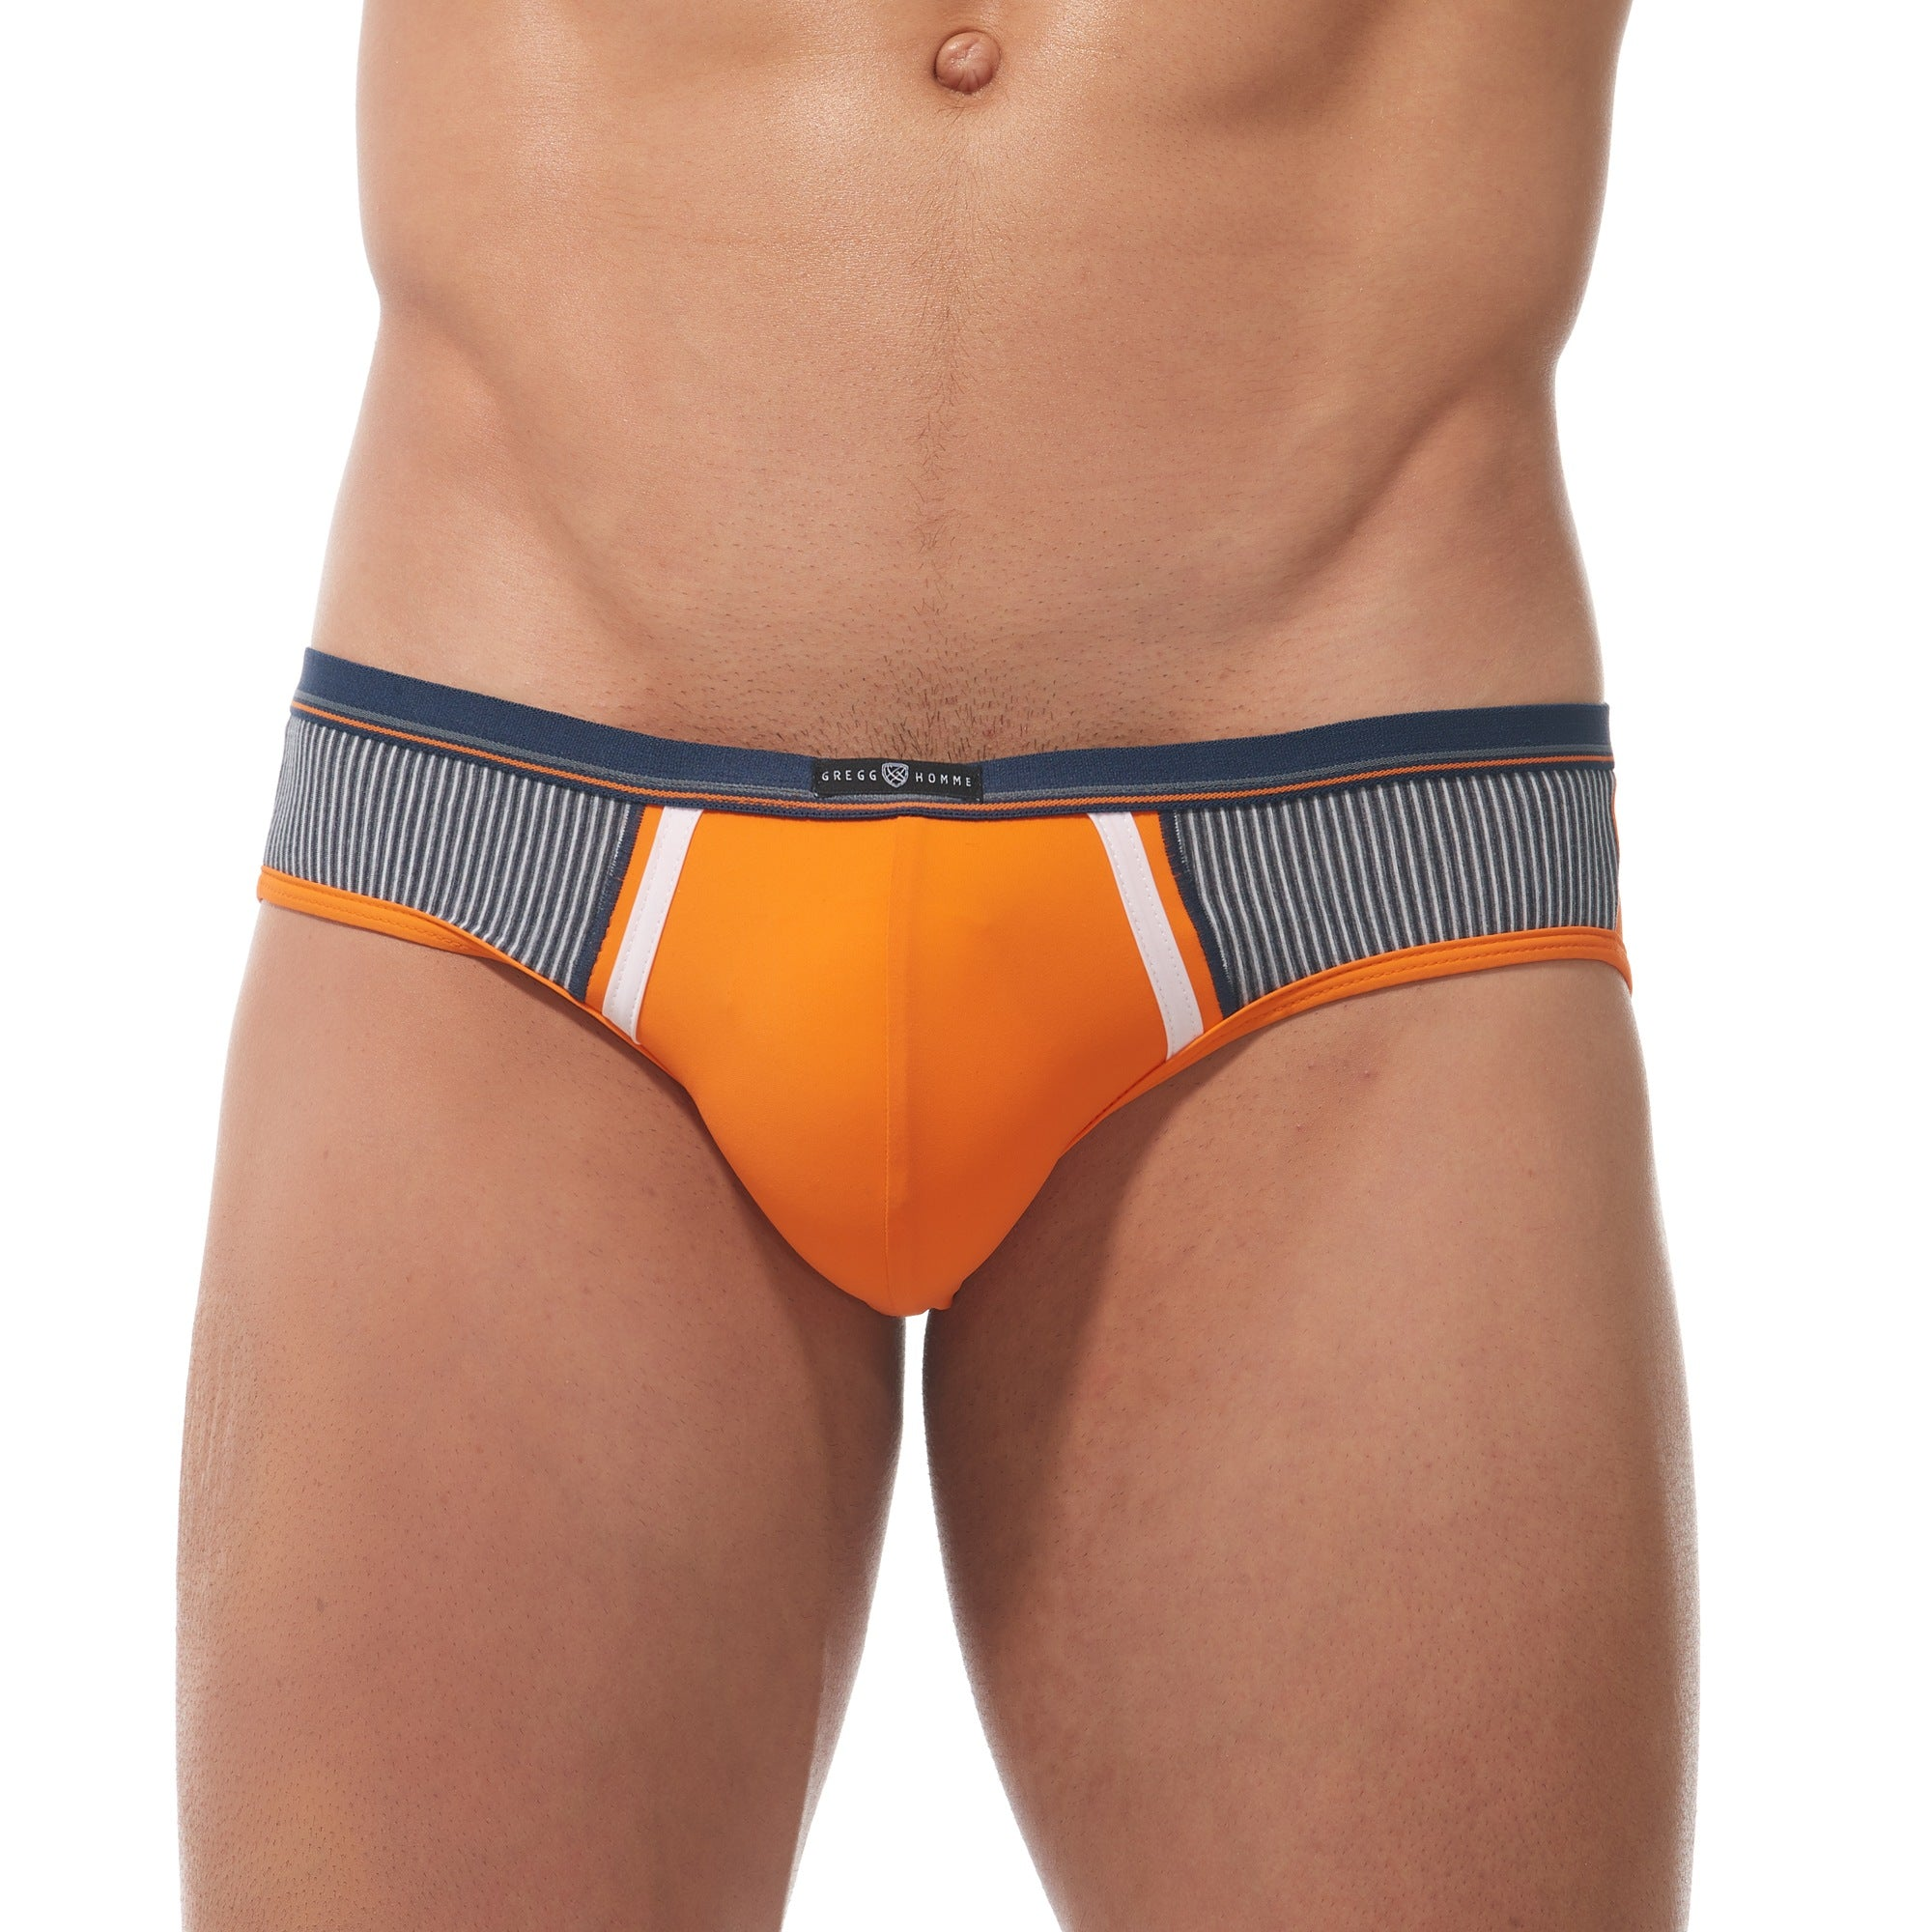 Gregg Homme Orange Push Up 3.0 Brief